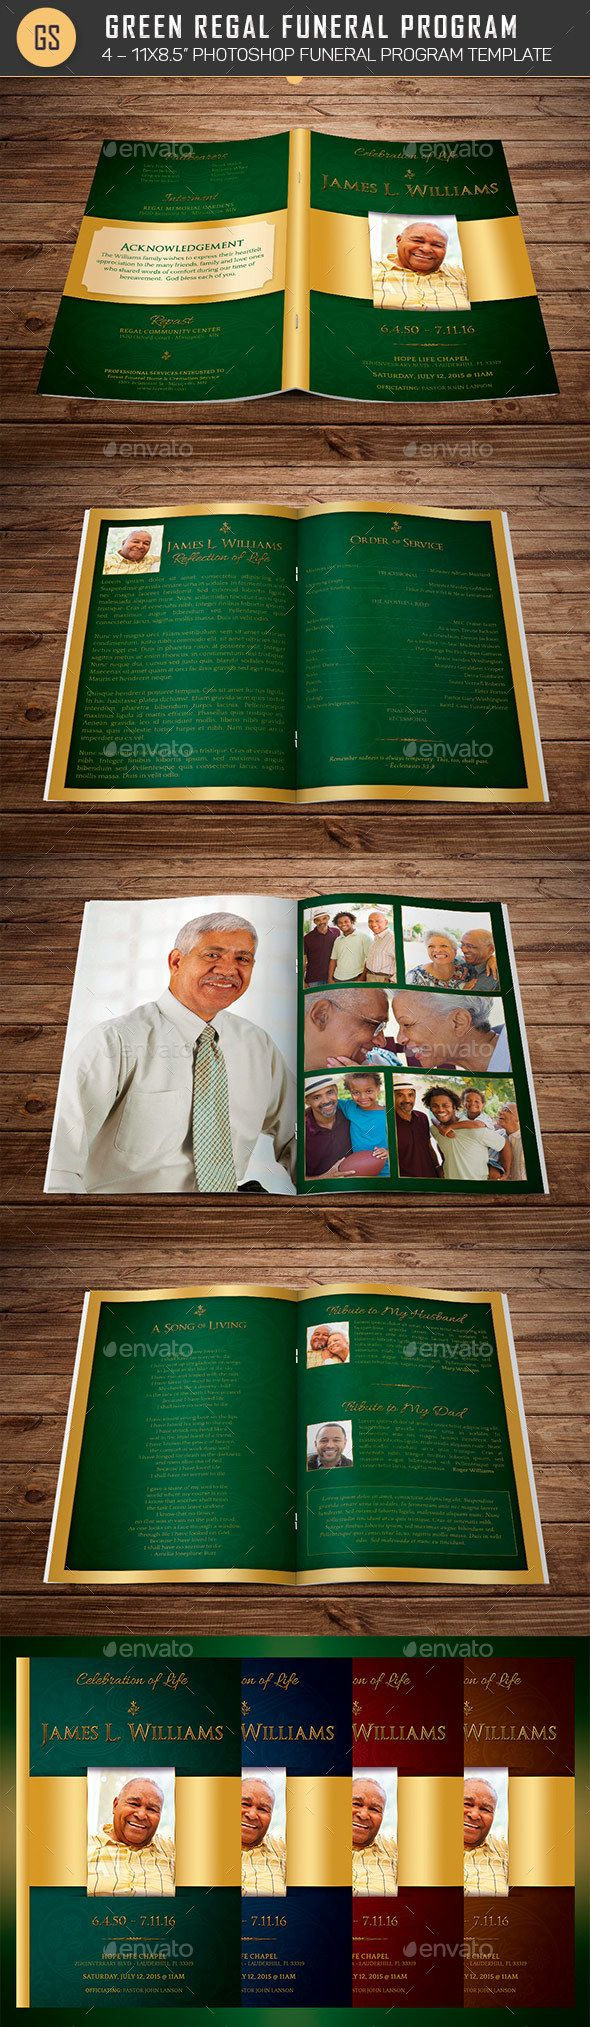 Green Regal Funeral Program Template — InDesign INDD #women #church • Available here → https://graphicriver.net/item/green-regal-funeral-program-template/20604577?ref=pxcr